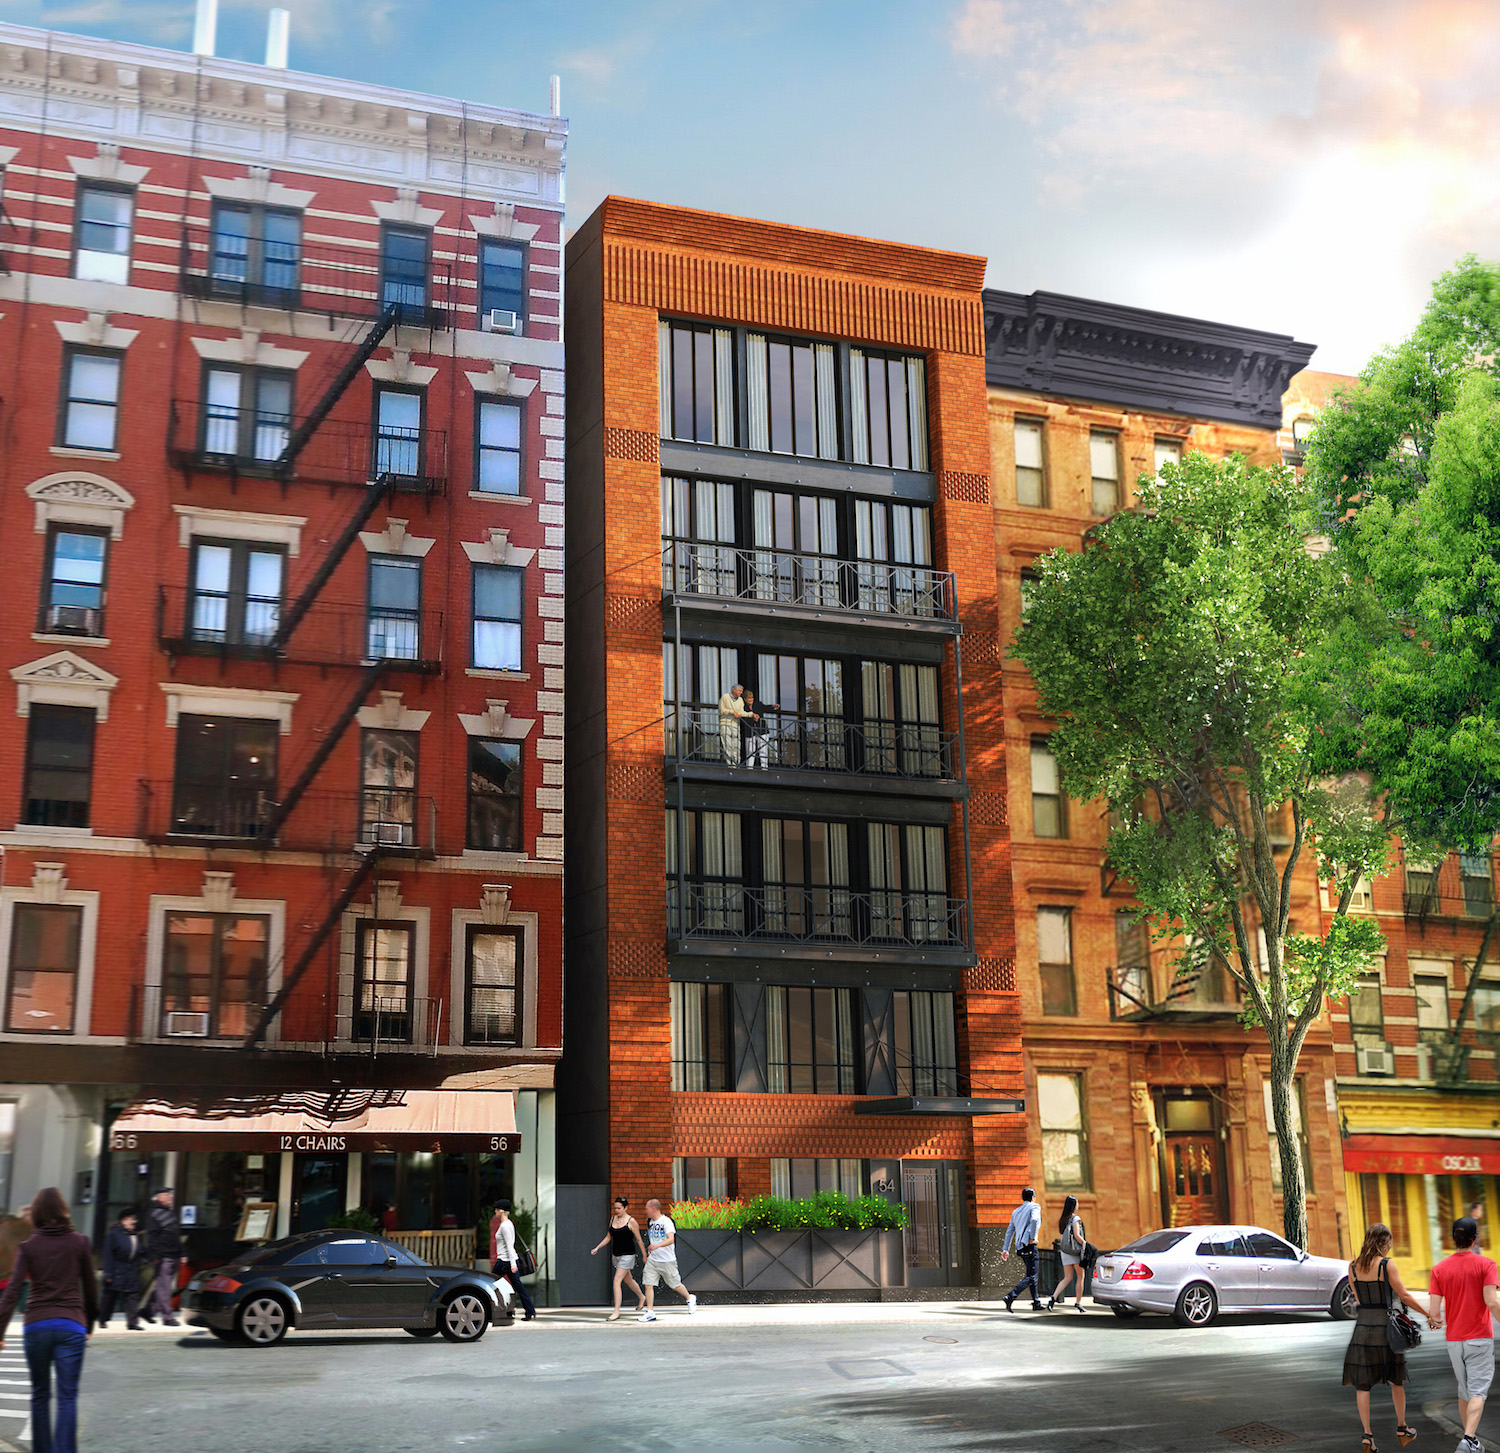 54 MacDougal Street, rendering by Building Studio Architects